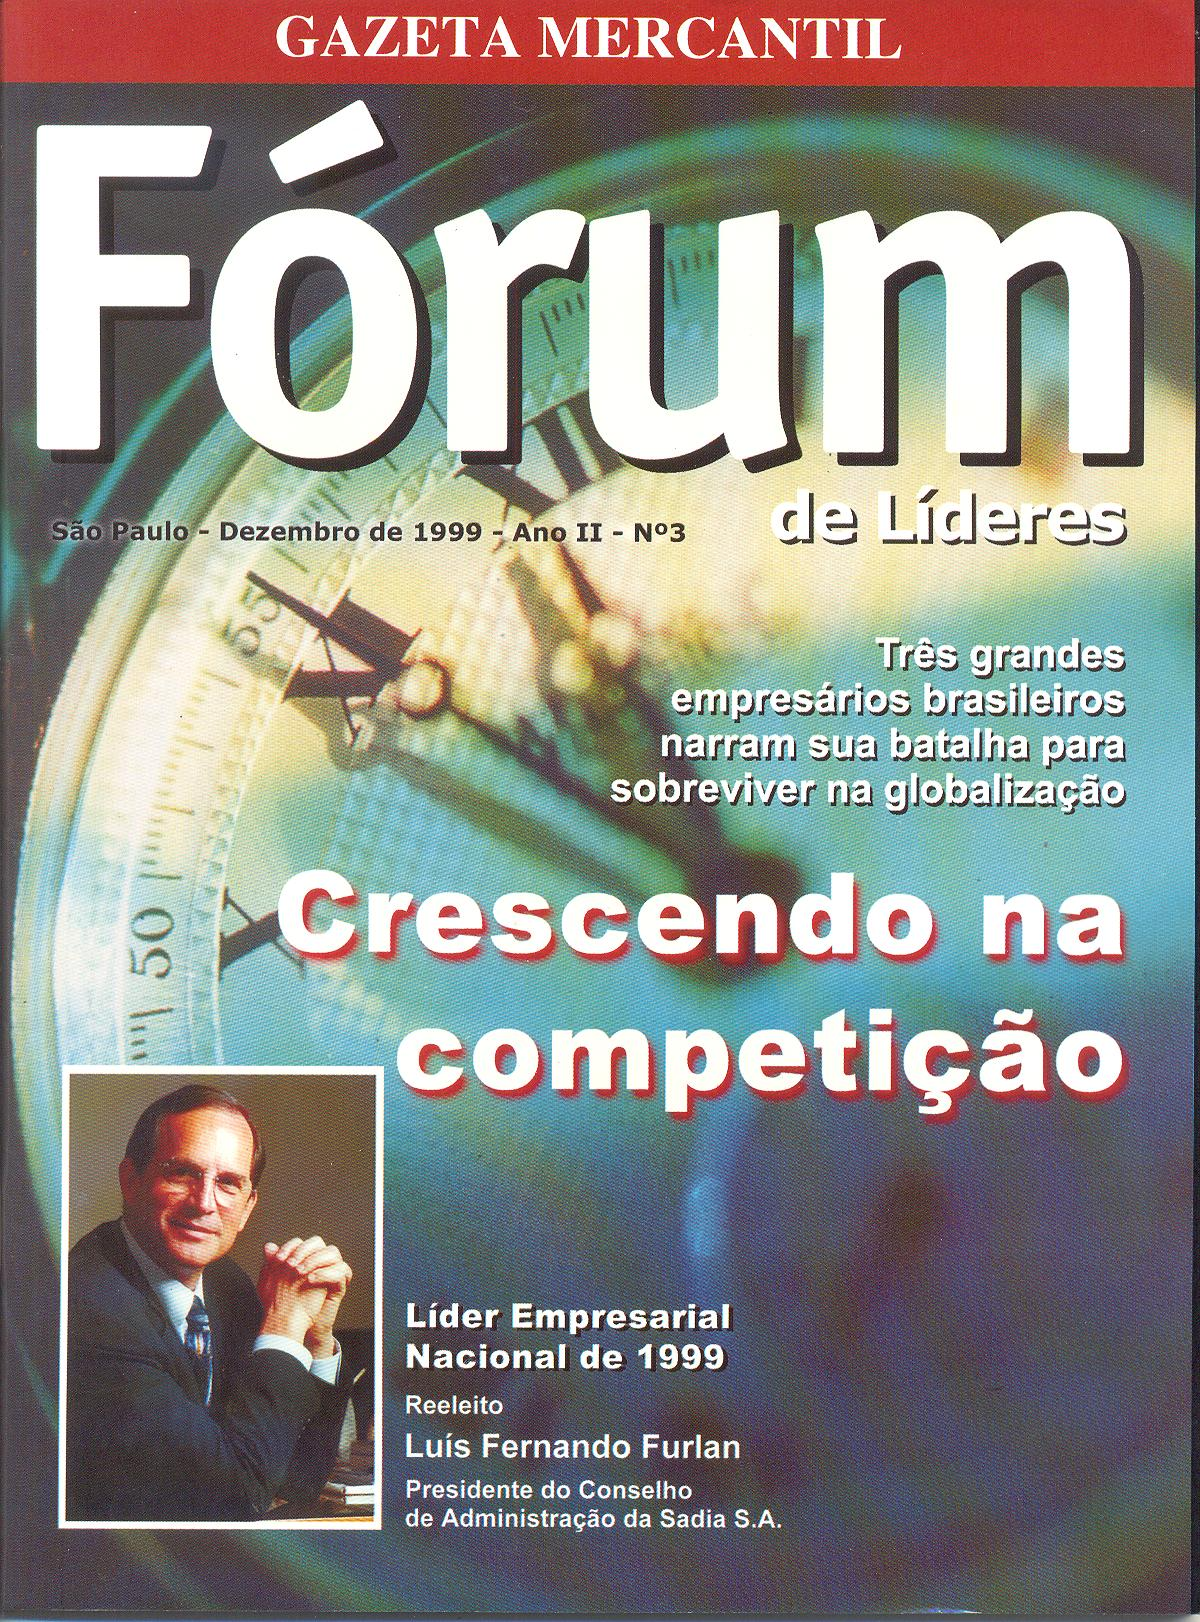 1999 Gazeta Mercantil (1)